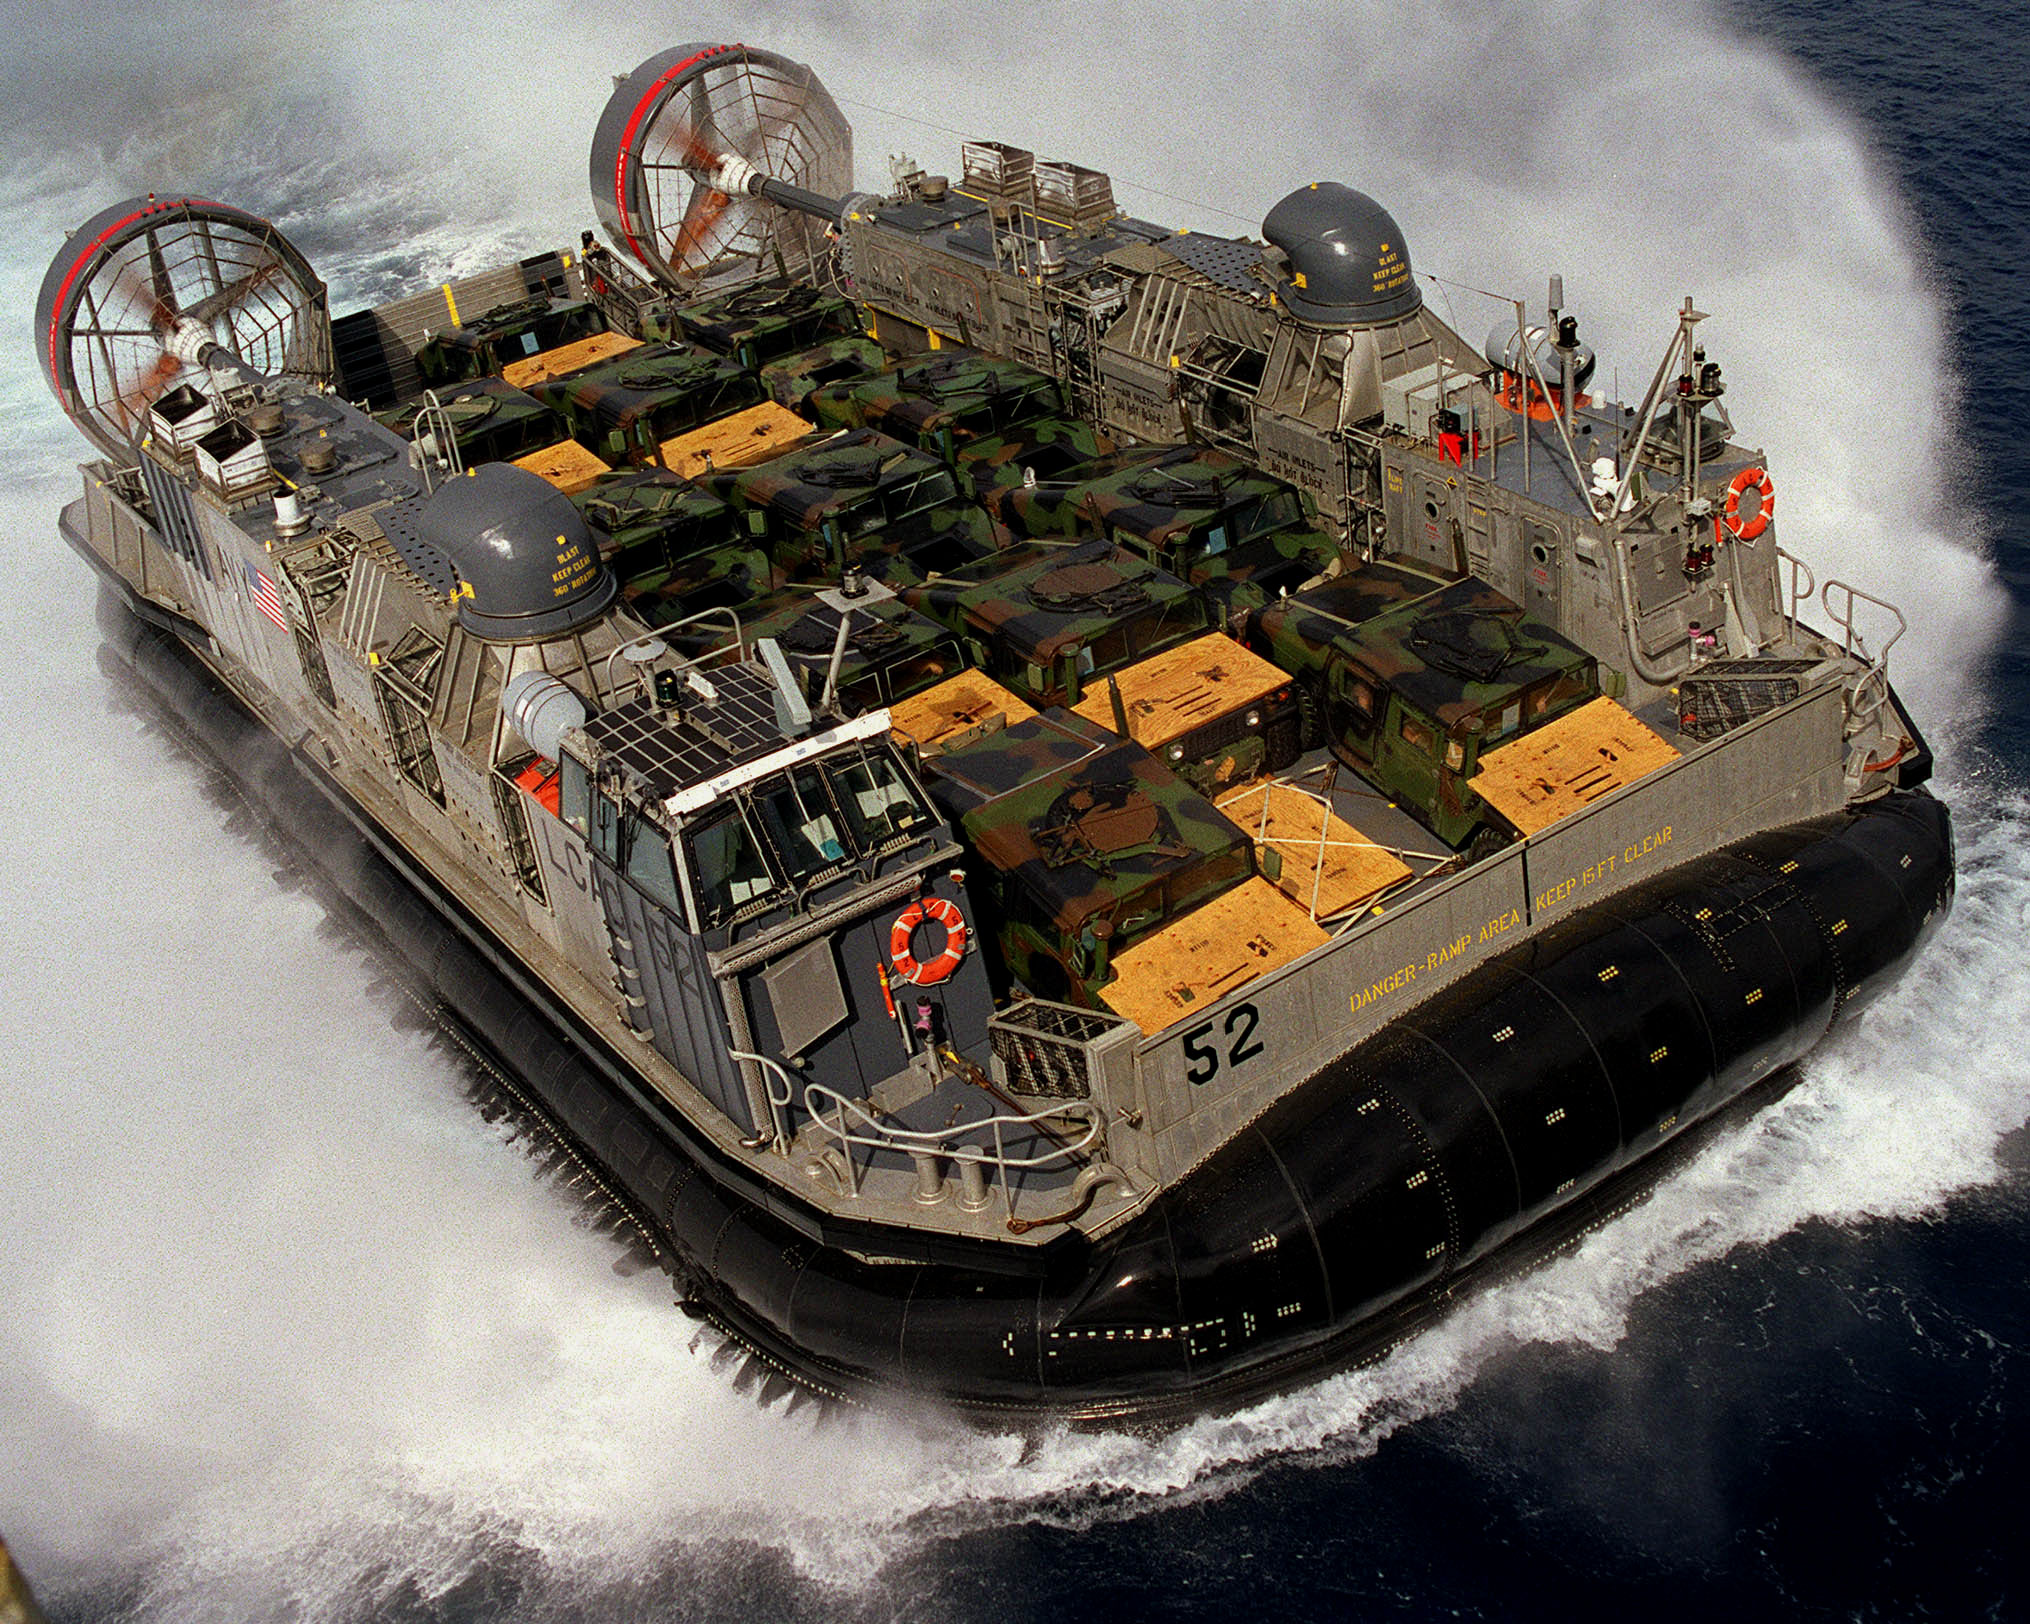 http://it.wikipedia.org/wiki/Hovercraft#mediaviewer/File:LCAC_19970620.jpg